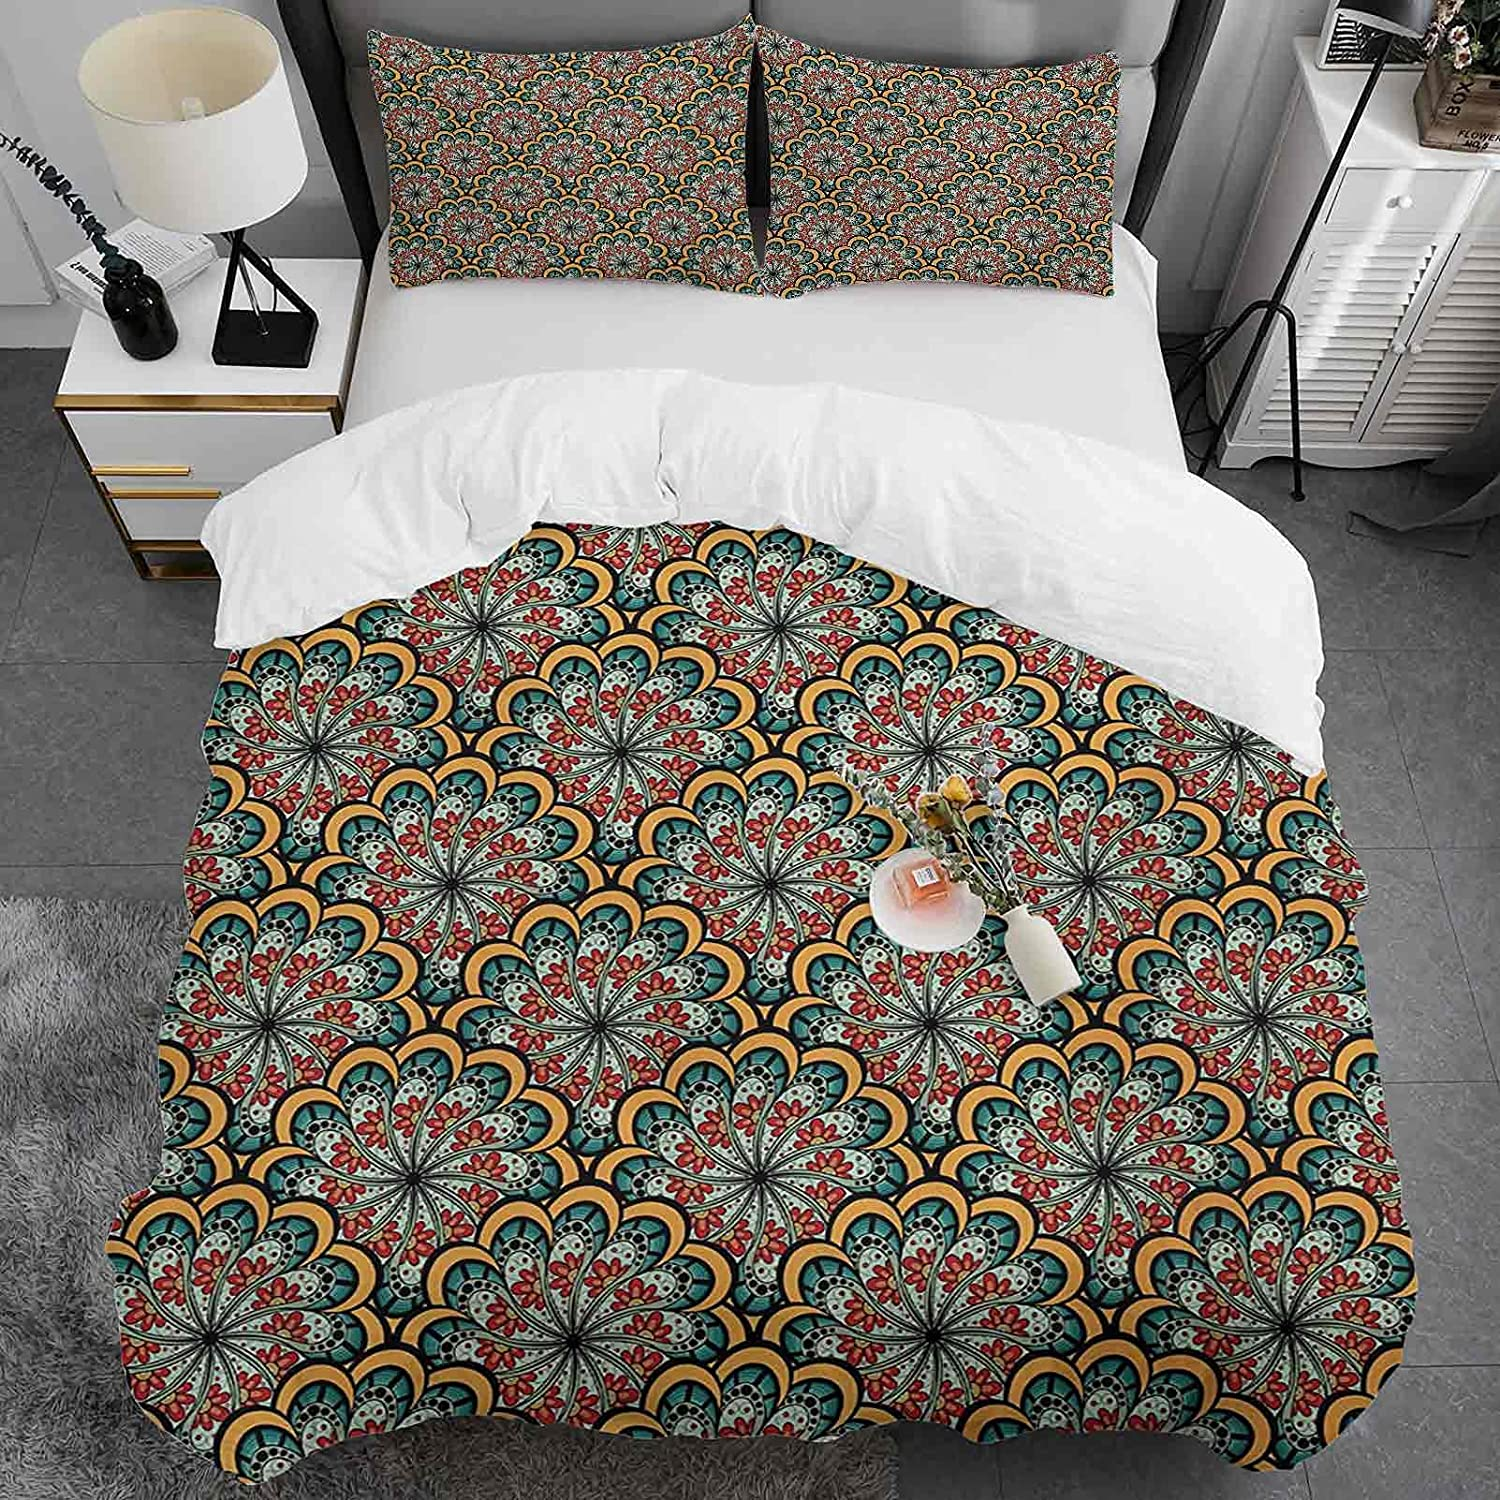 Max 64% OFF Paisley Duvet Cover Full Size Outlet ☆ Free Shipping Design Wavy L Flowers Flourishing